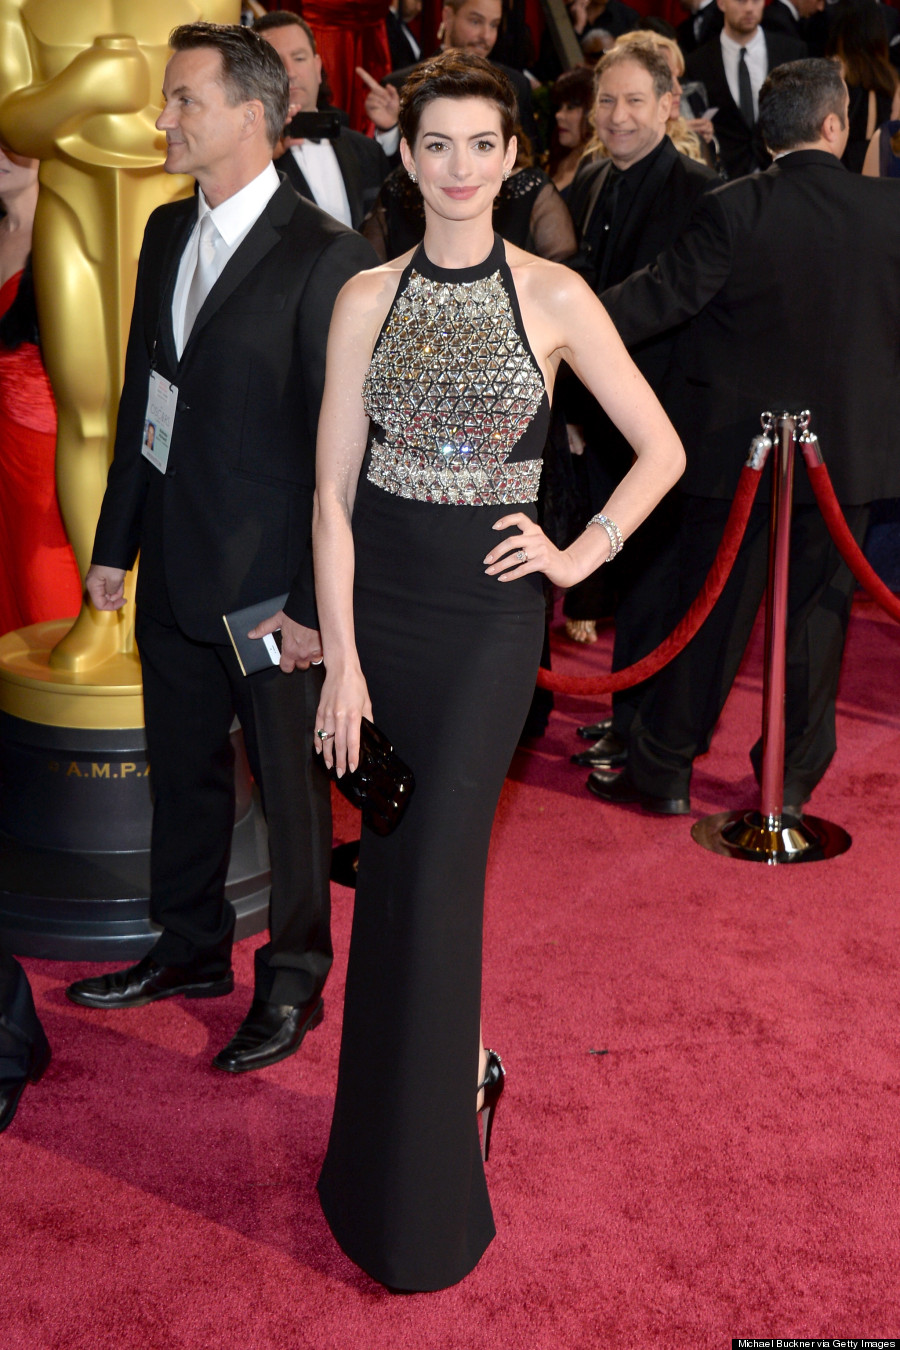 Anne Hathaway Oscars 2014: Gucci Armour Dress Doesn't Have Nipple ...